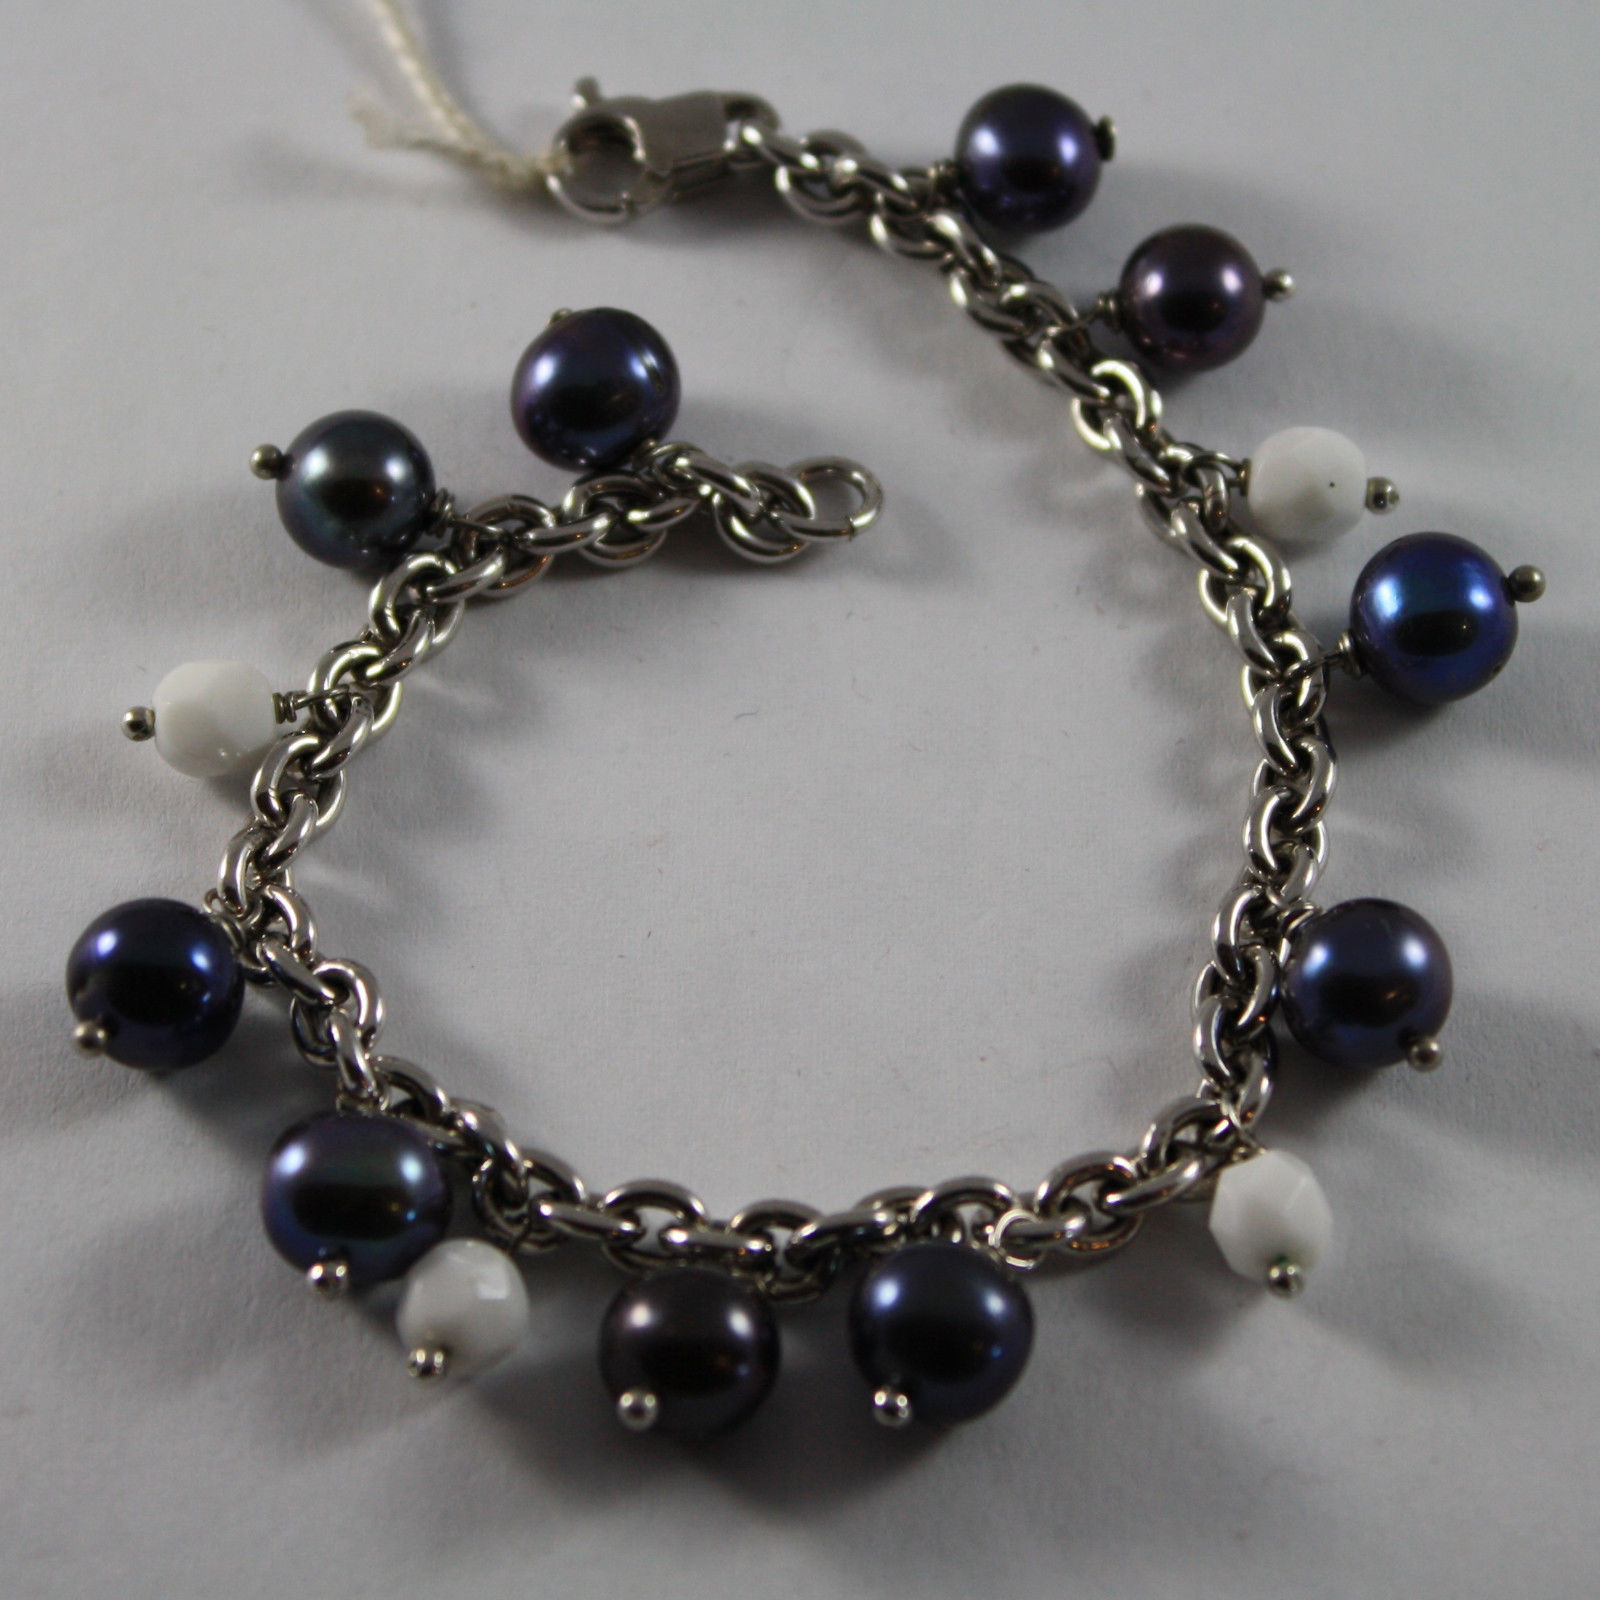 .925 RHODIUM SILVER BRACELET WITH BLUE PEARLS AND WHITE AGATE FACETED